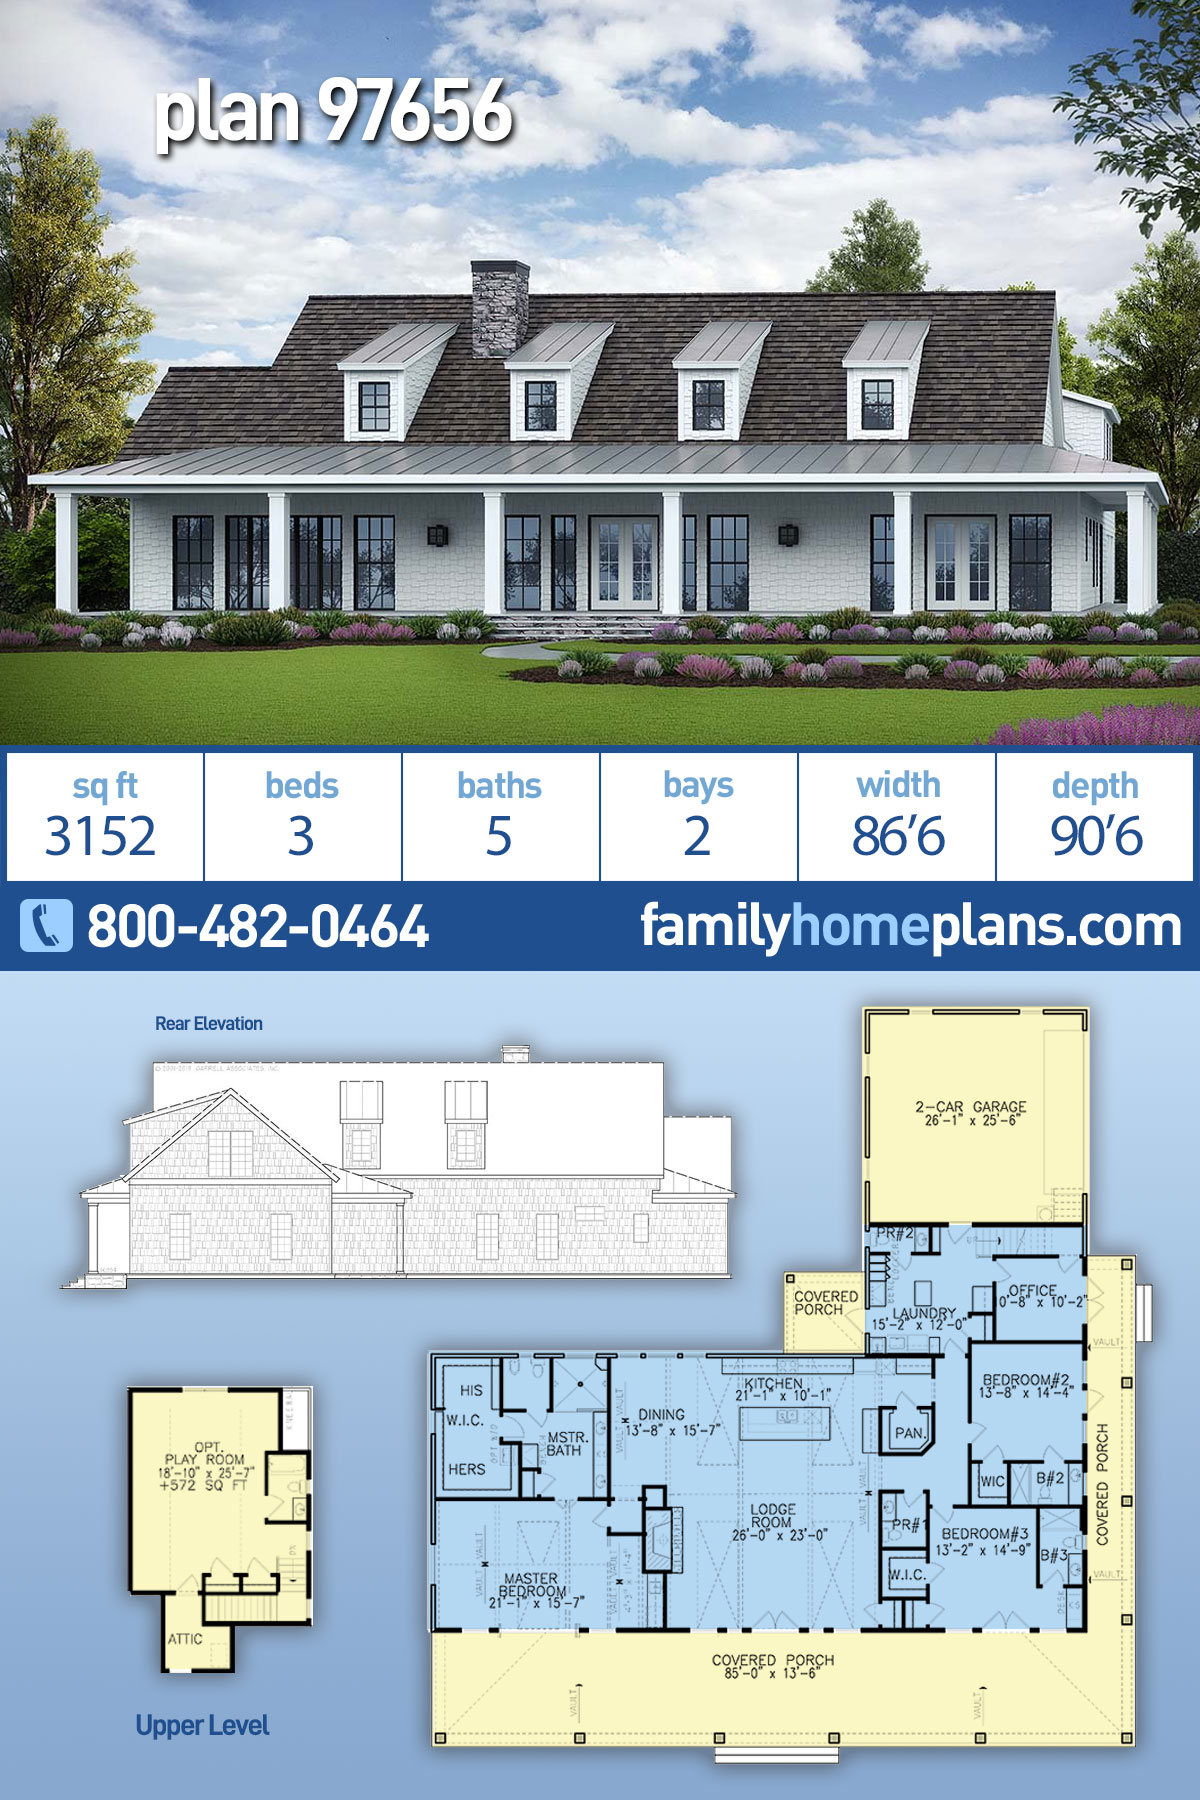 Country, Modern Farmhouse, Southern House Plan 97656 with 3 Beds , 5 Baths , 2 Car Garage